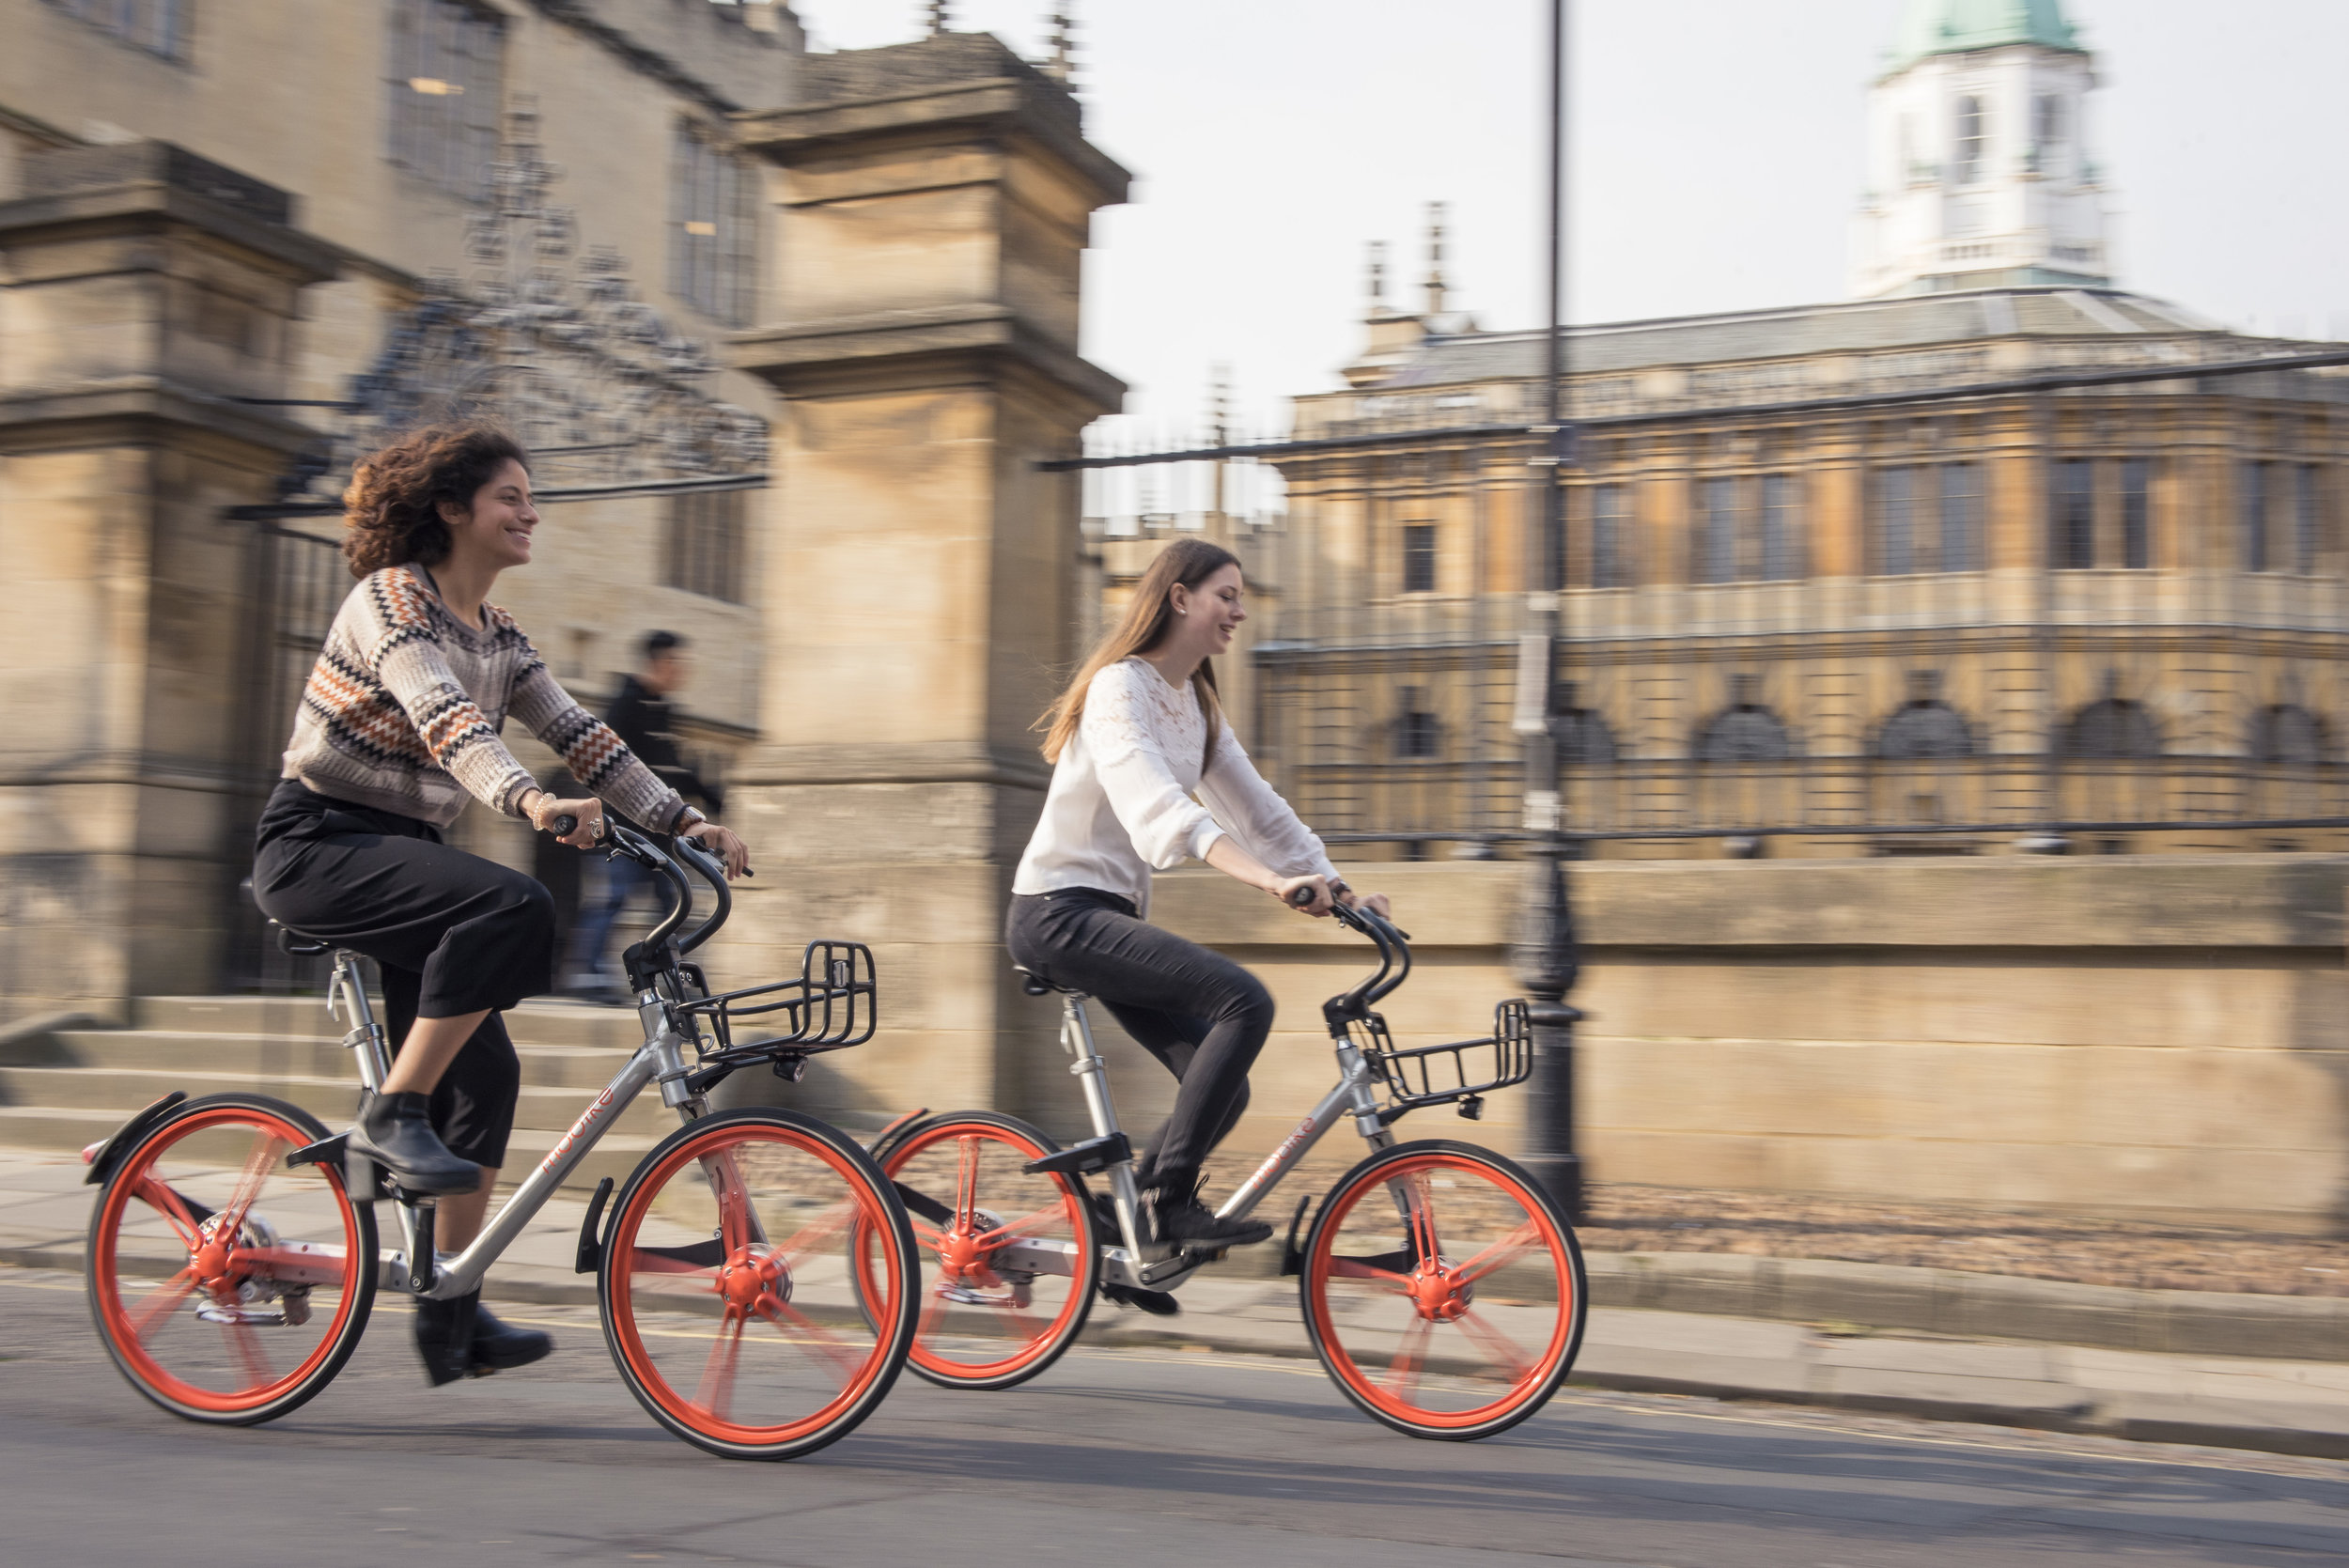 Cycle.Land_Oxford_by_John_Cairns_16th_Oct_2017-4.JPG